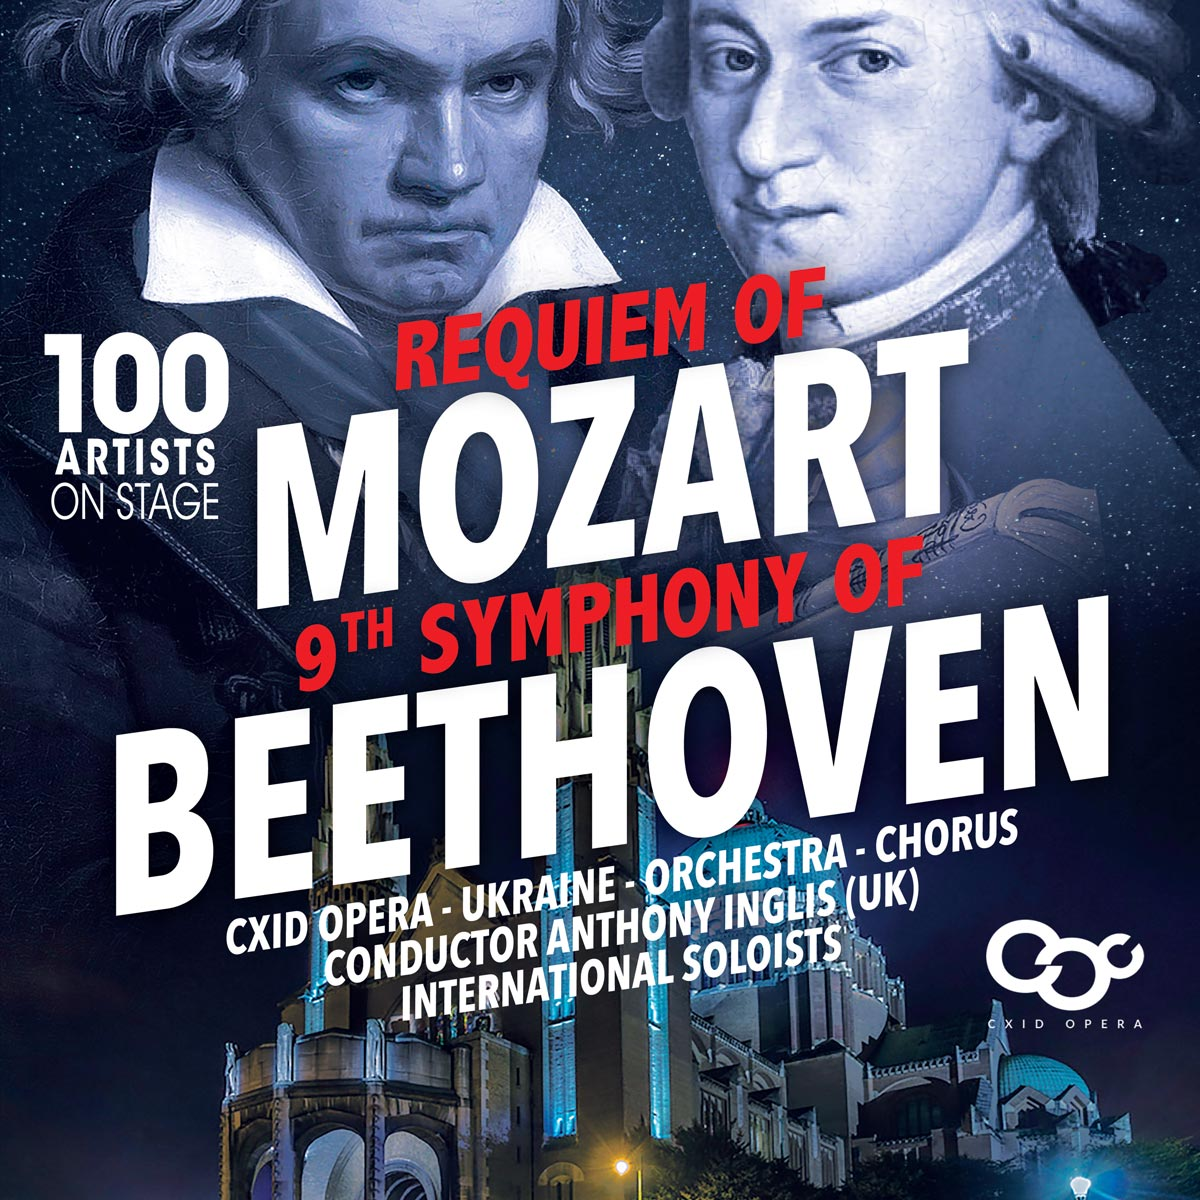 The Requiem of Mozart and the 9th Symphony of Beethoven, Basilica of Koekelberg.